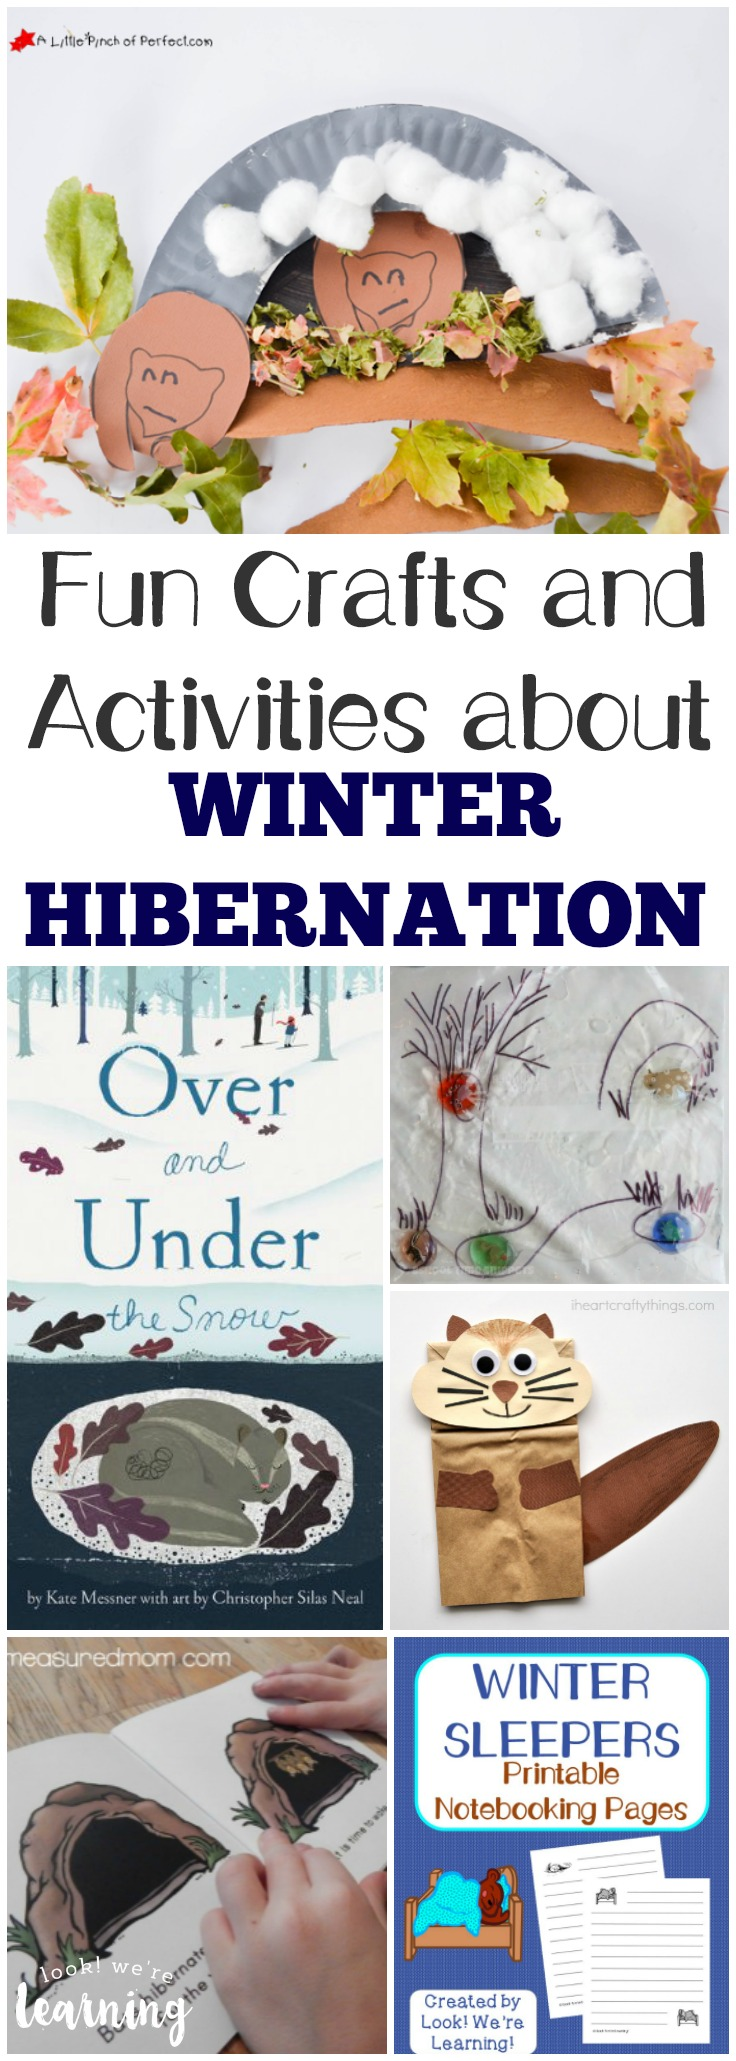 Share the fun hibernation crafts and activities in this hibernation unit study with the kids this winter!